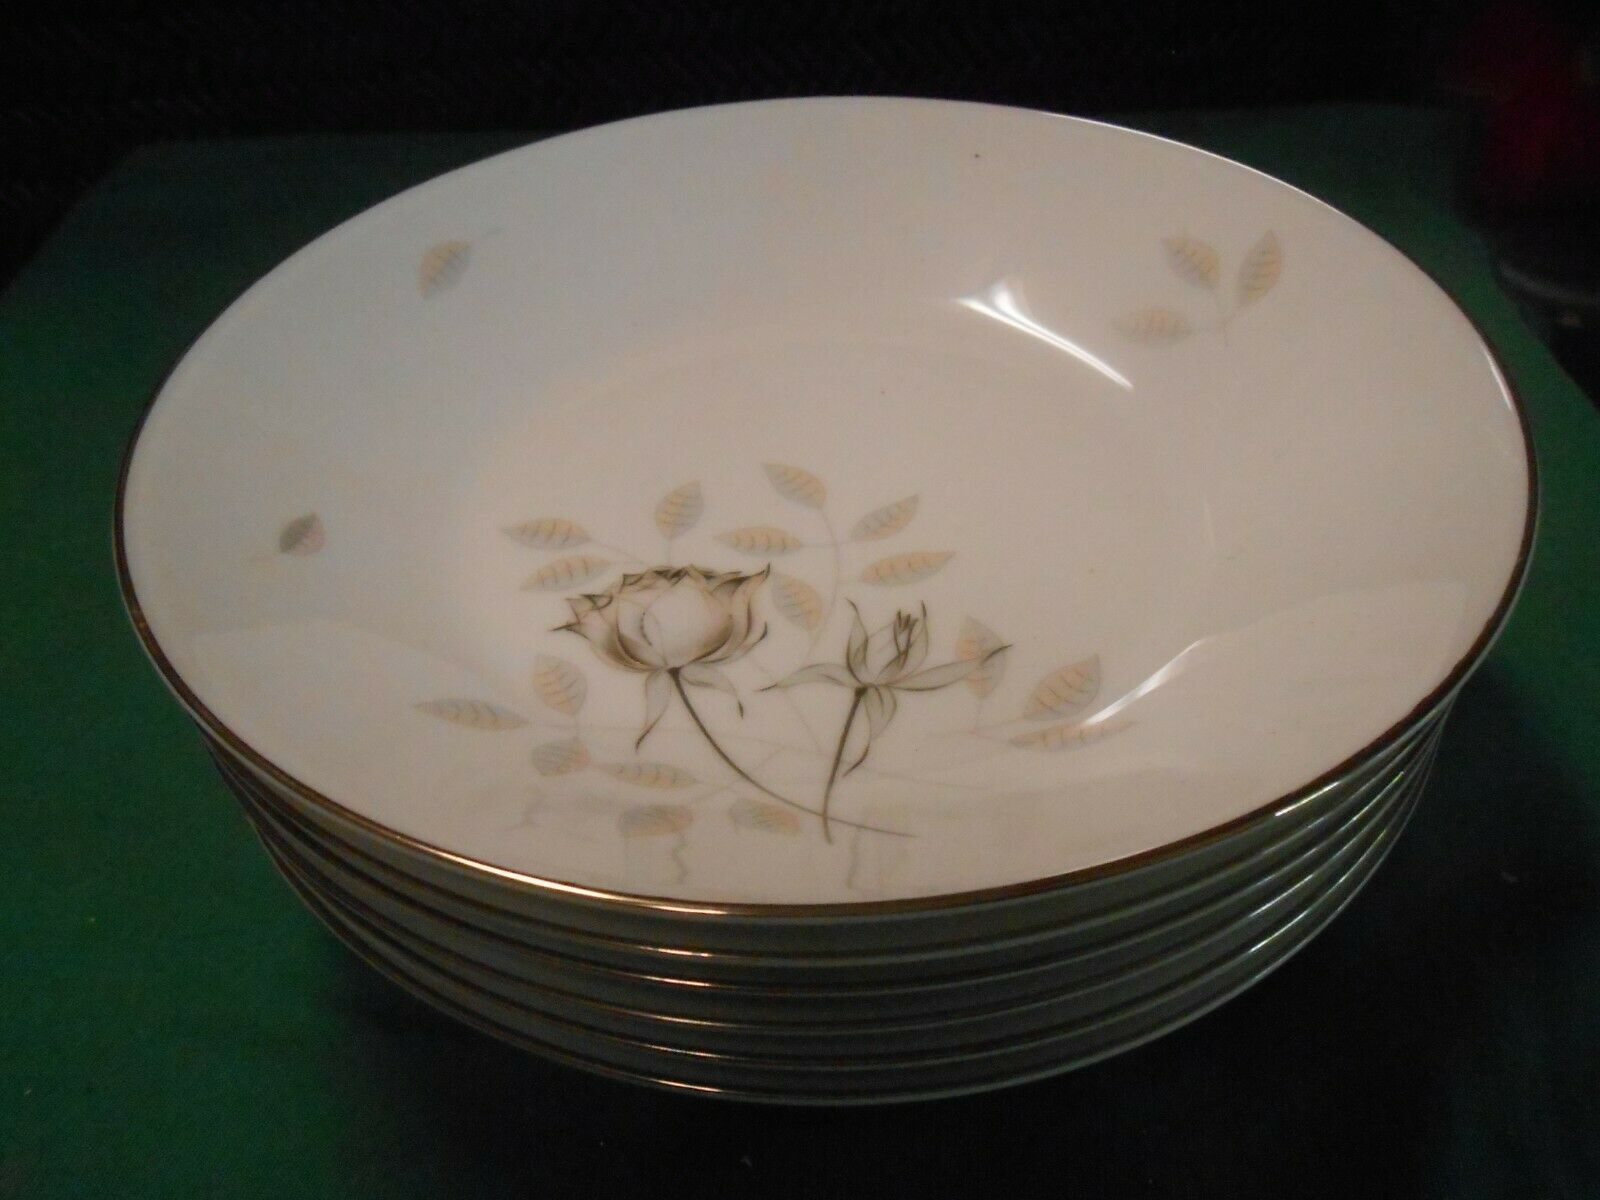 Primary image for  Magnificent ROSENTHAL Germany PEACH BROWN-GRAY ROSE . Set 6 SOUP BOWLS 8.75""